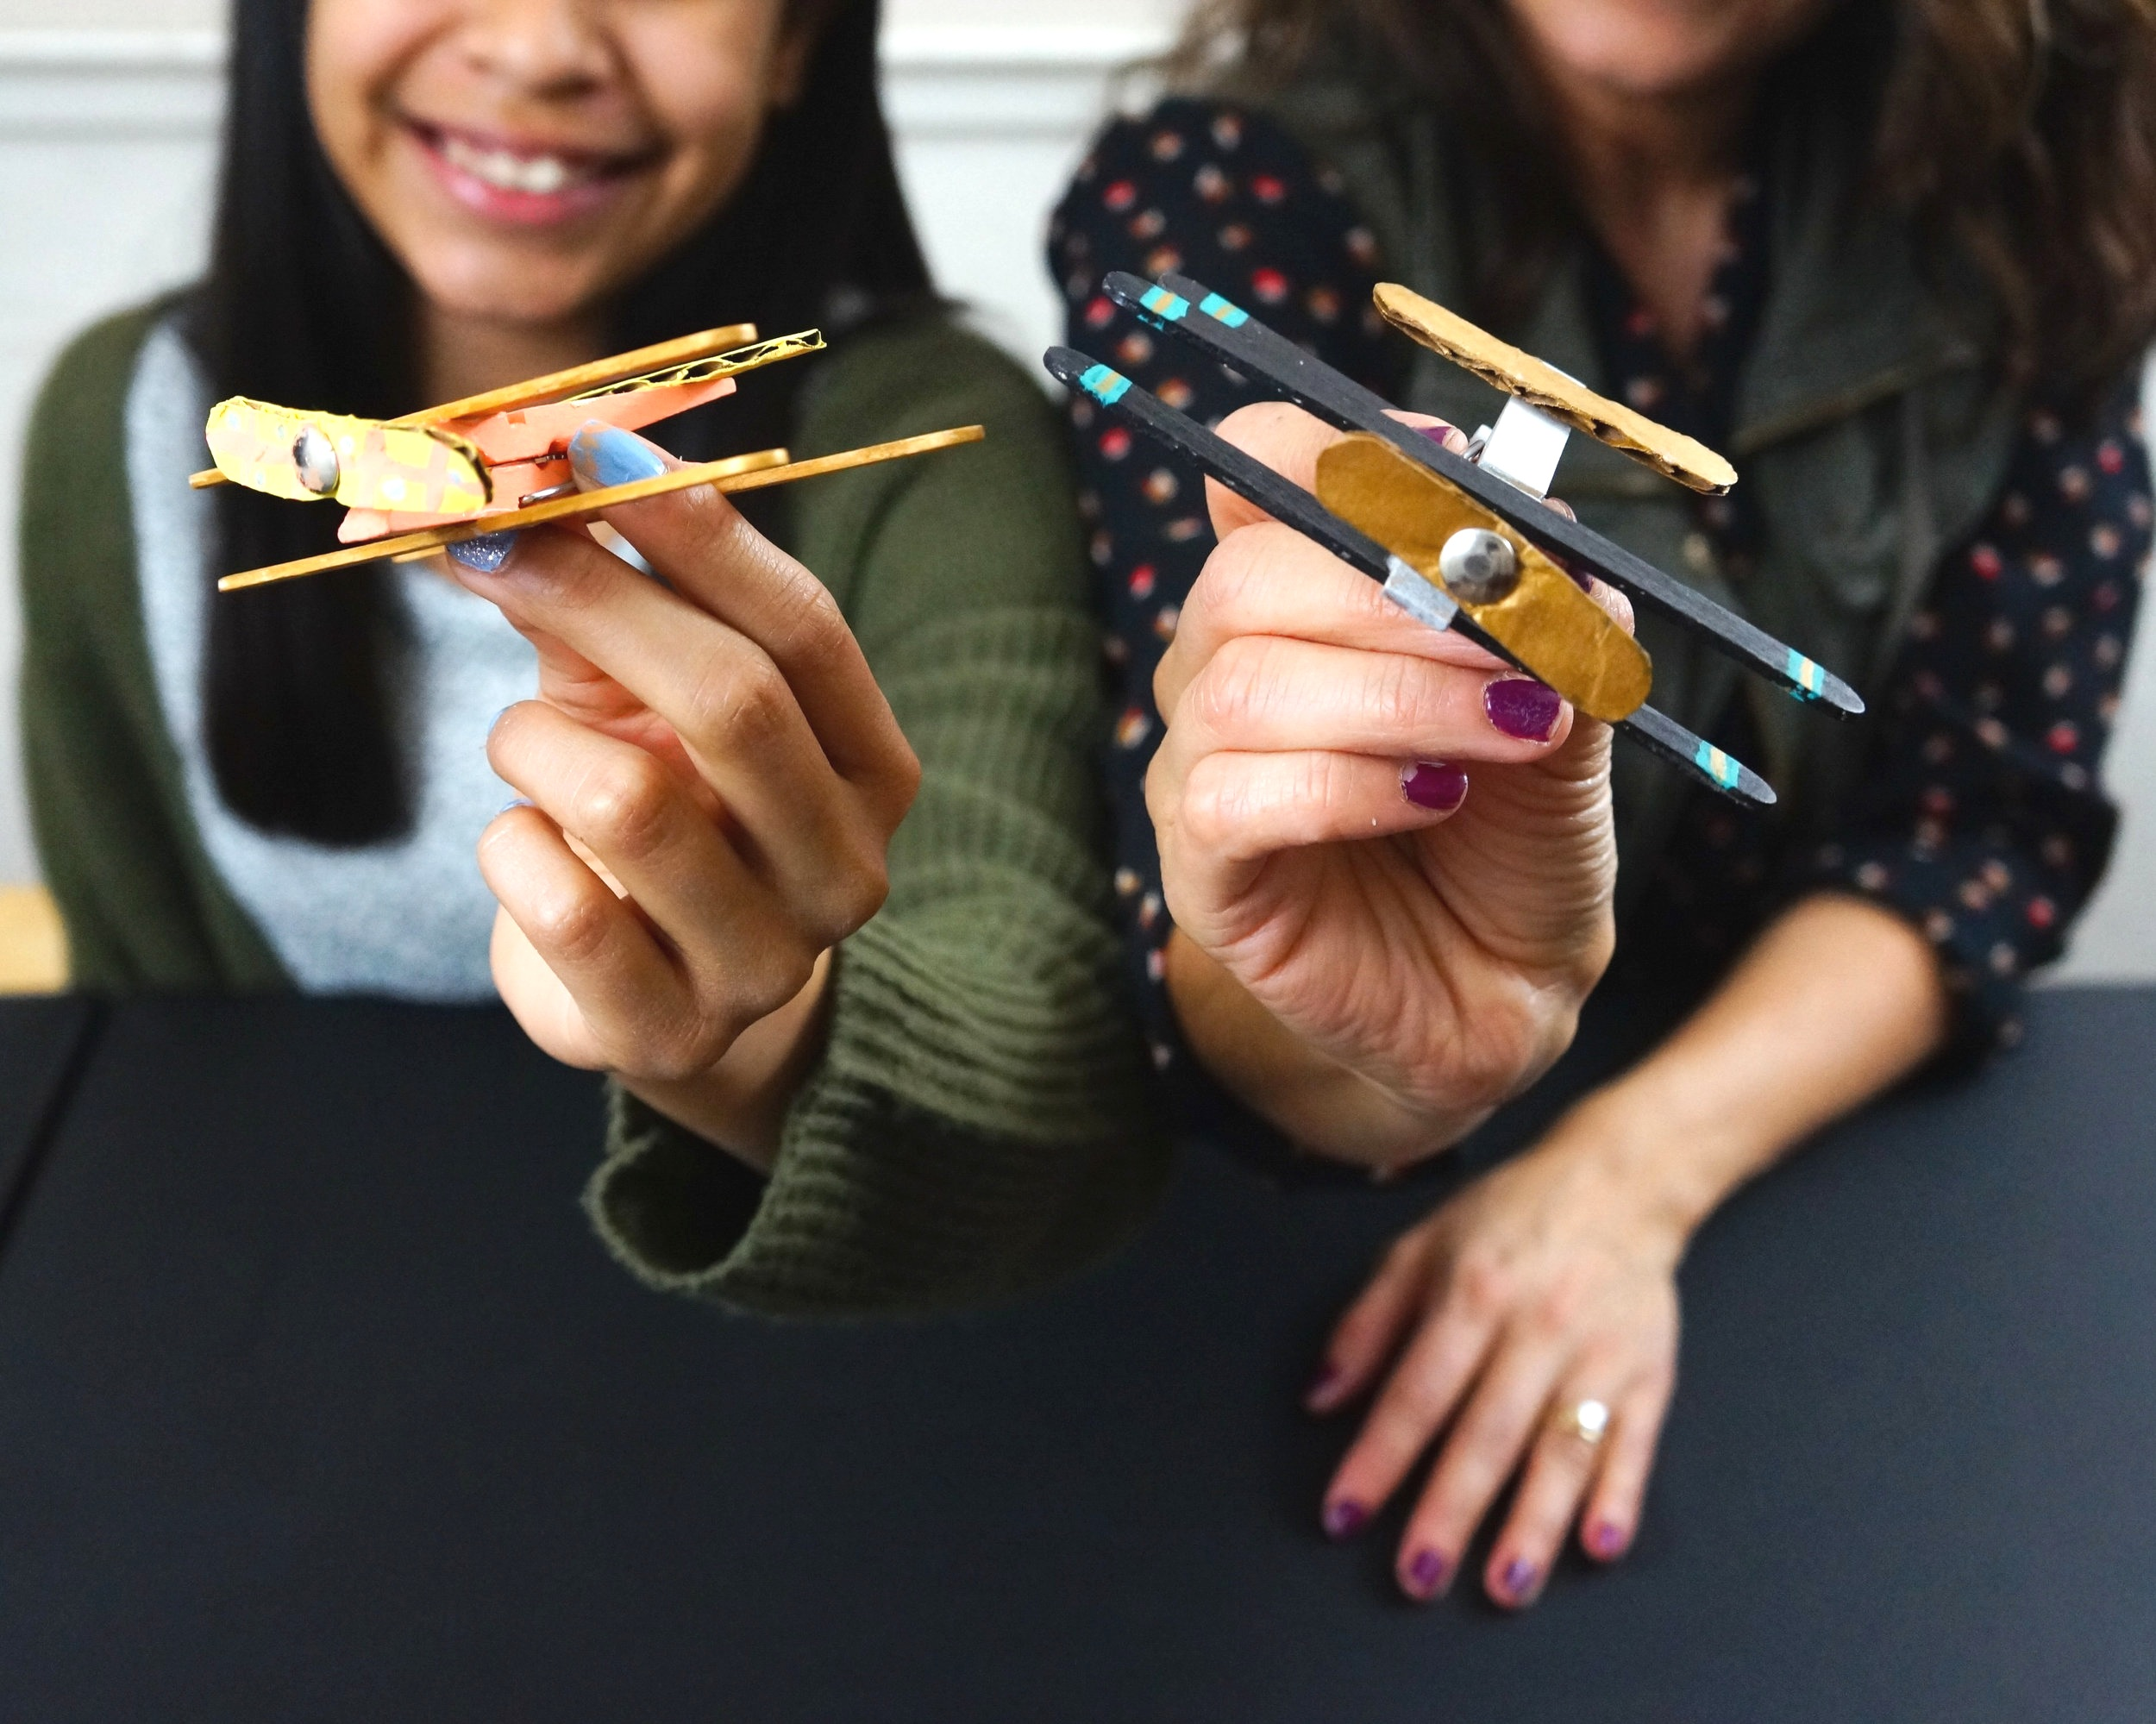 DIY Clothespin airplane, Clothespin airplane craft, Popsicle stick airplane, Craft plane, Plane with moving parts, Clothespin airplane with moving propeller, DIY spinning propeller, All About Hope projects